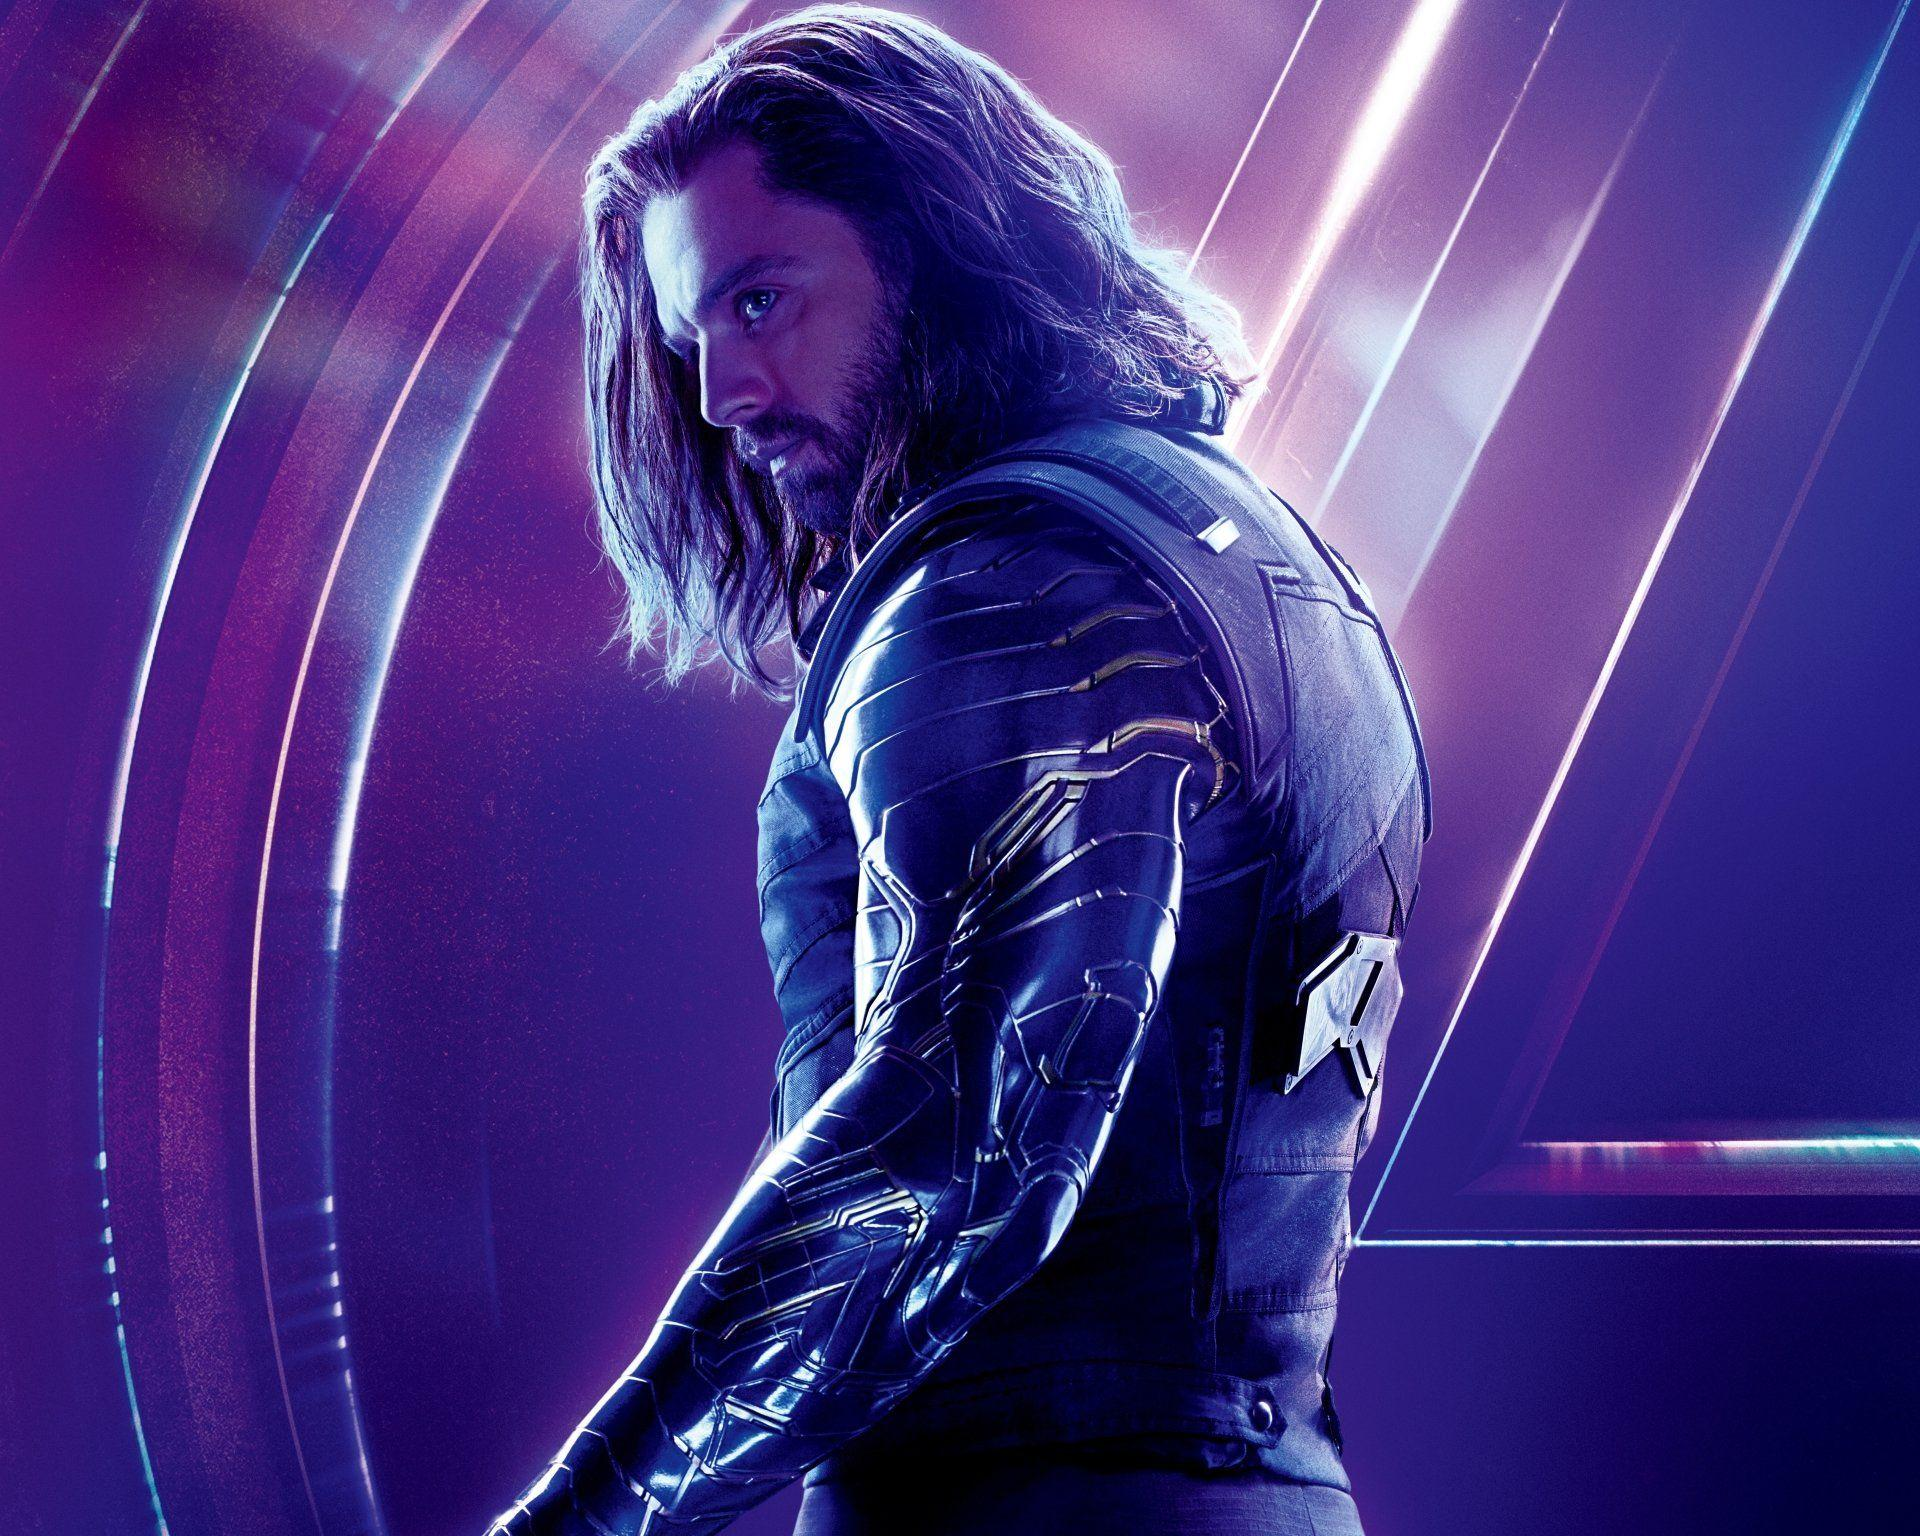 Winter Soldier HD Wallpapers - Wallpaper Cave